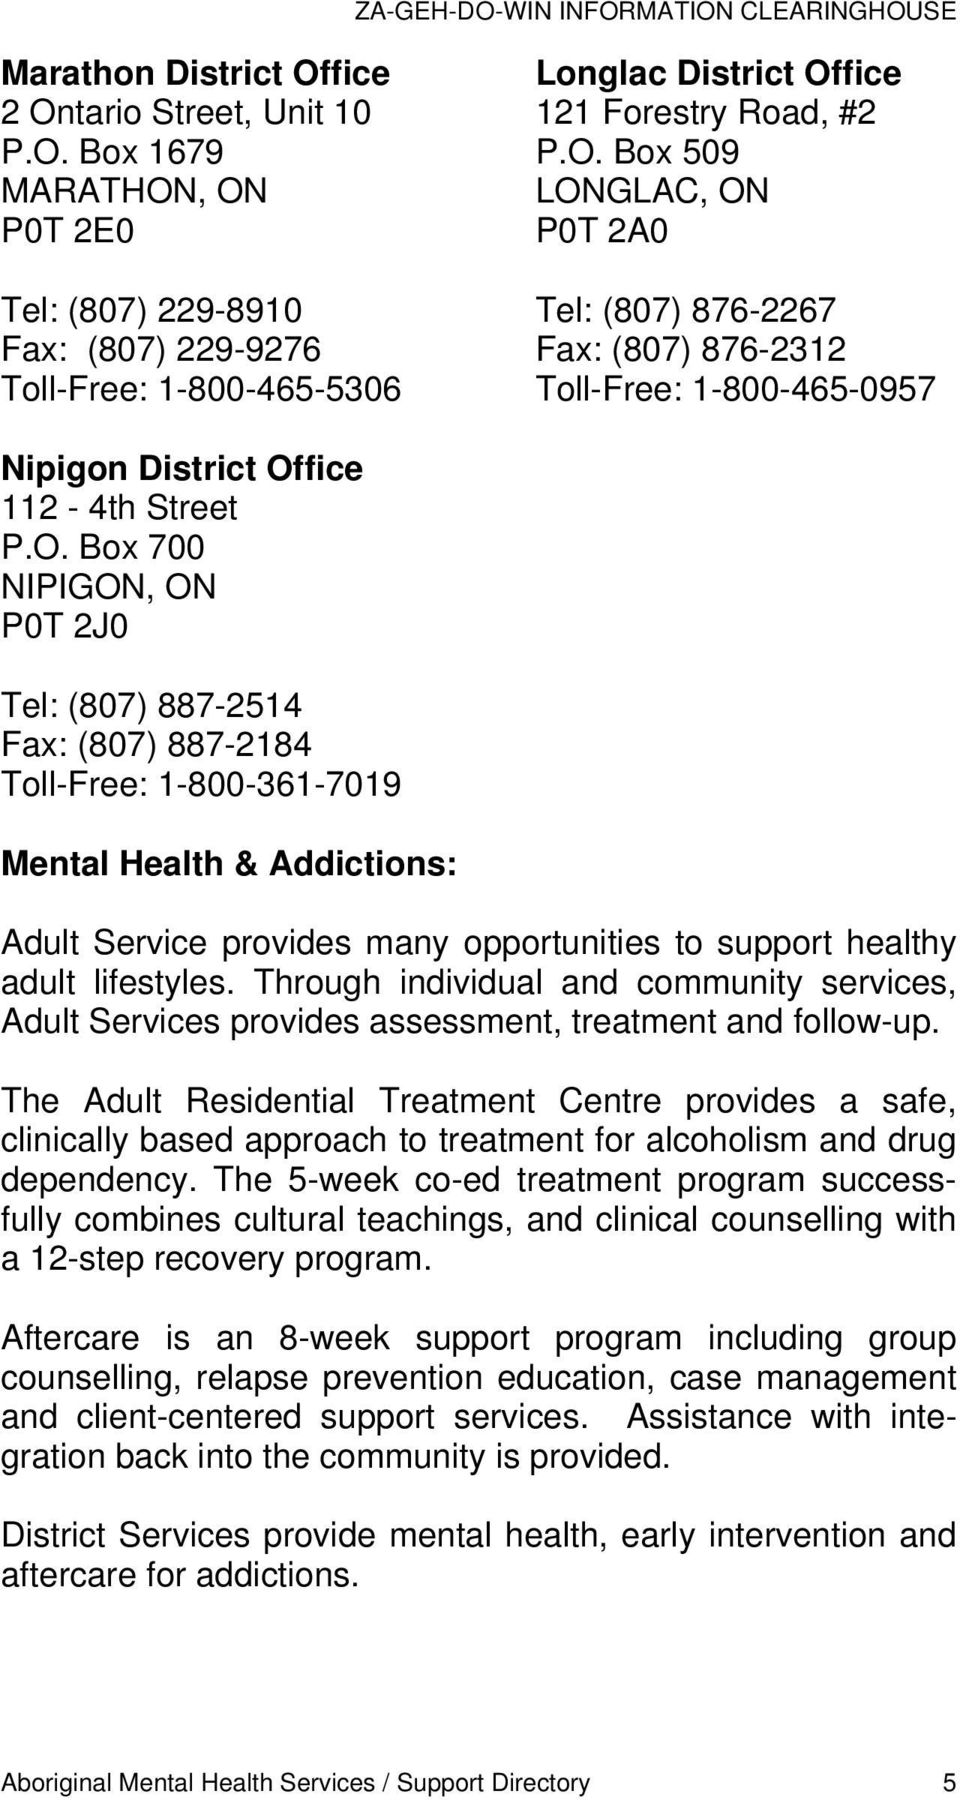 887-2184 Toll-Free: 1-800-361-7019 Mental Health & Addictions: Adult Service provides many opportunities to support healthy adult lifestyles.